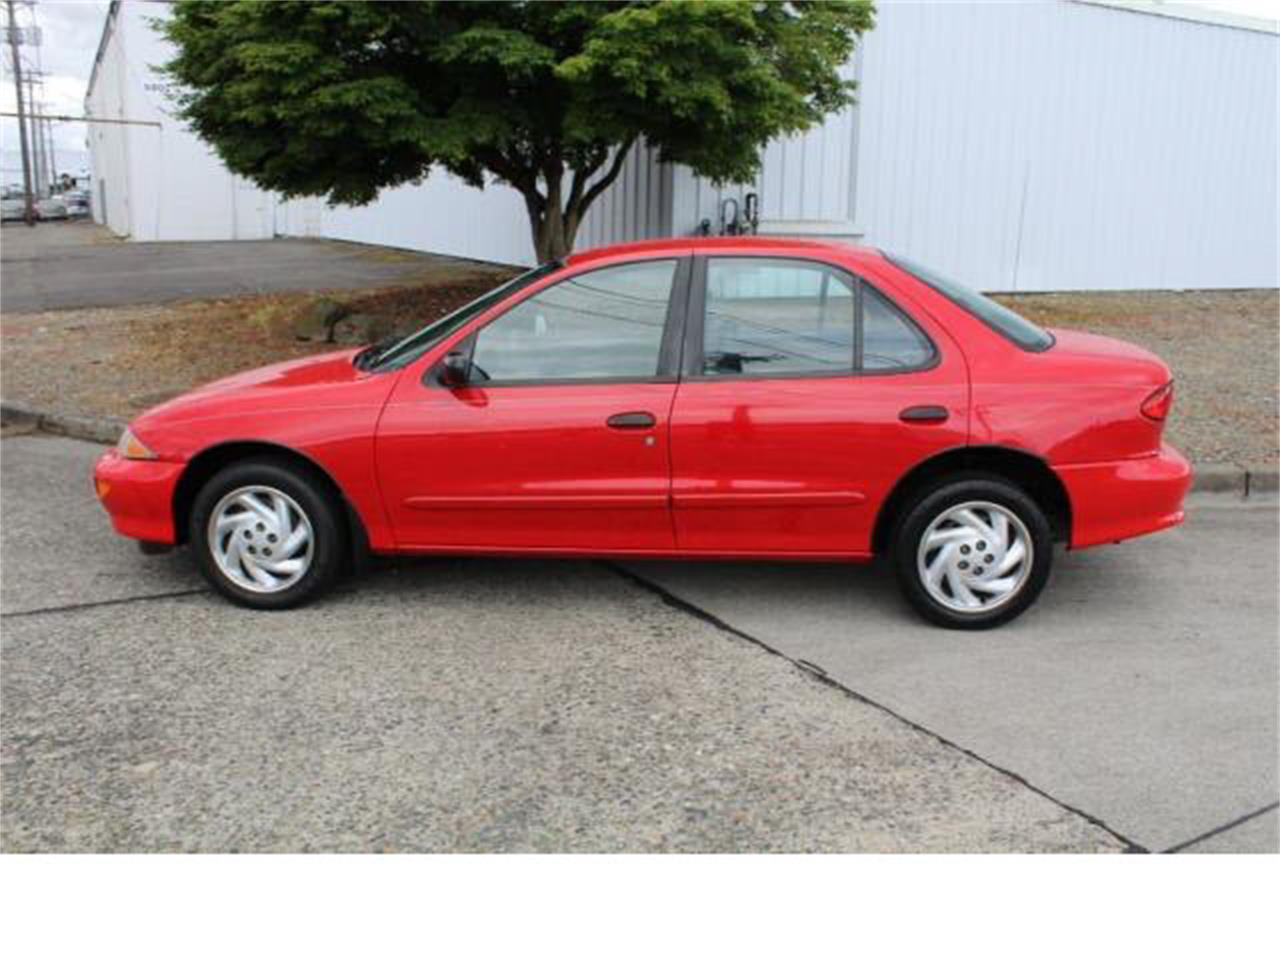 Large Picture of 1998 Chevrolet Cavalier - $2,990.00 Offered by Sabeti Motors - M5PO